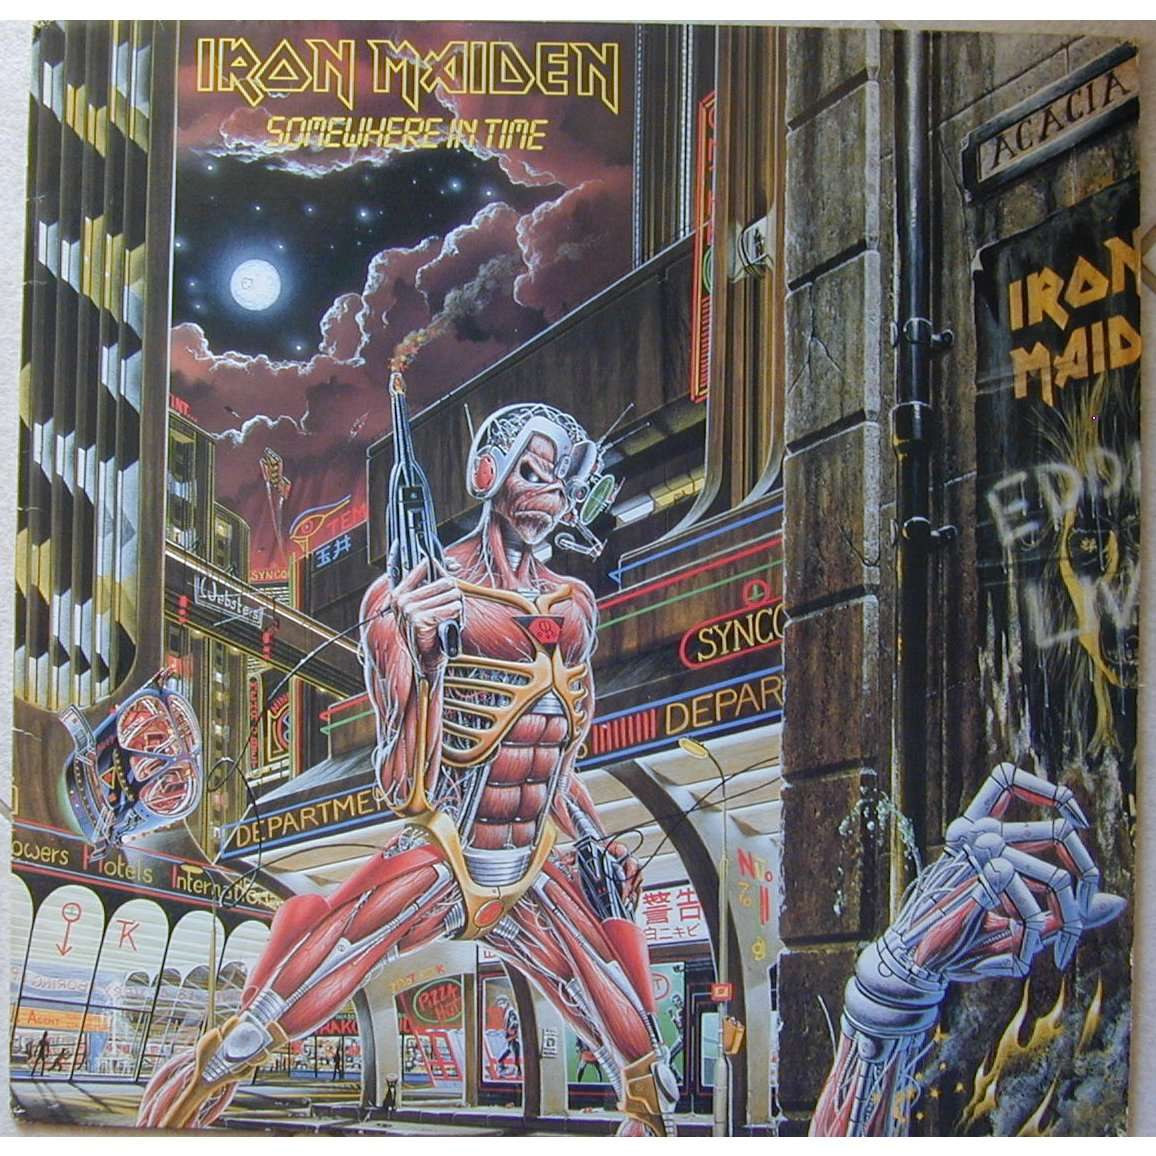 Somewhere in time by Iron Maiden, LP with speed06 - Ref ...